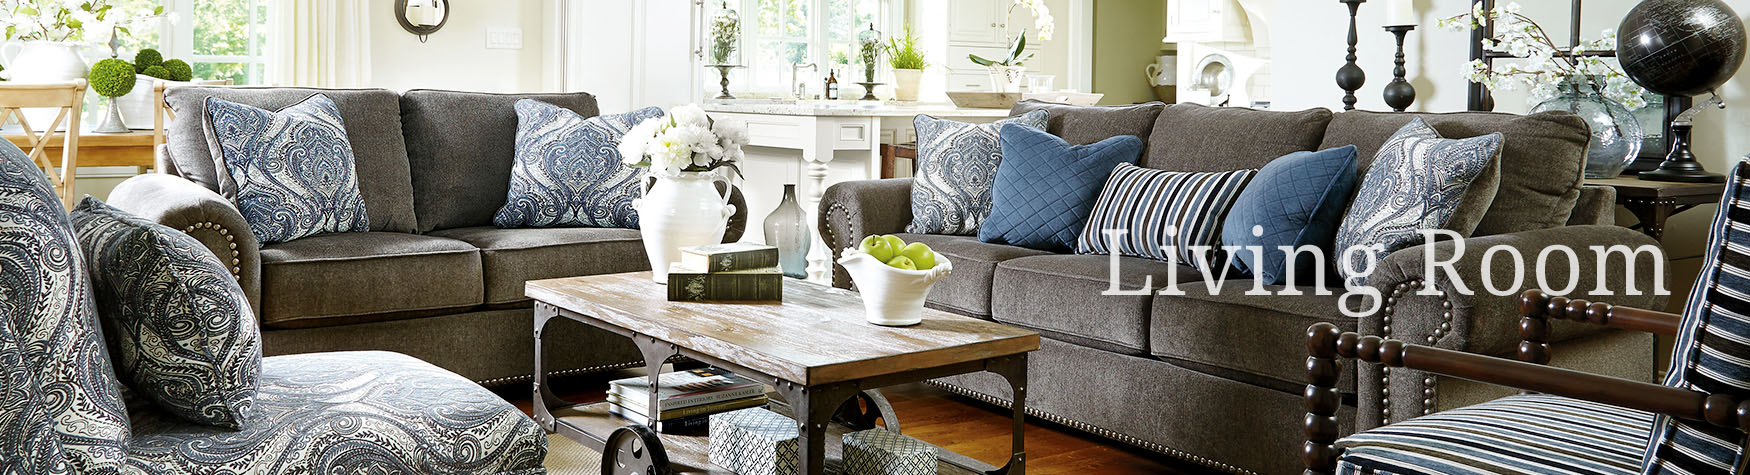 Grey Living Room Furniture Living Room Furniture On Sale Near Ft Bragg In Fayetteville Nc At